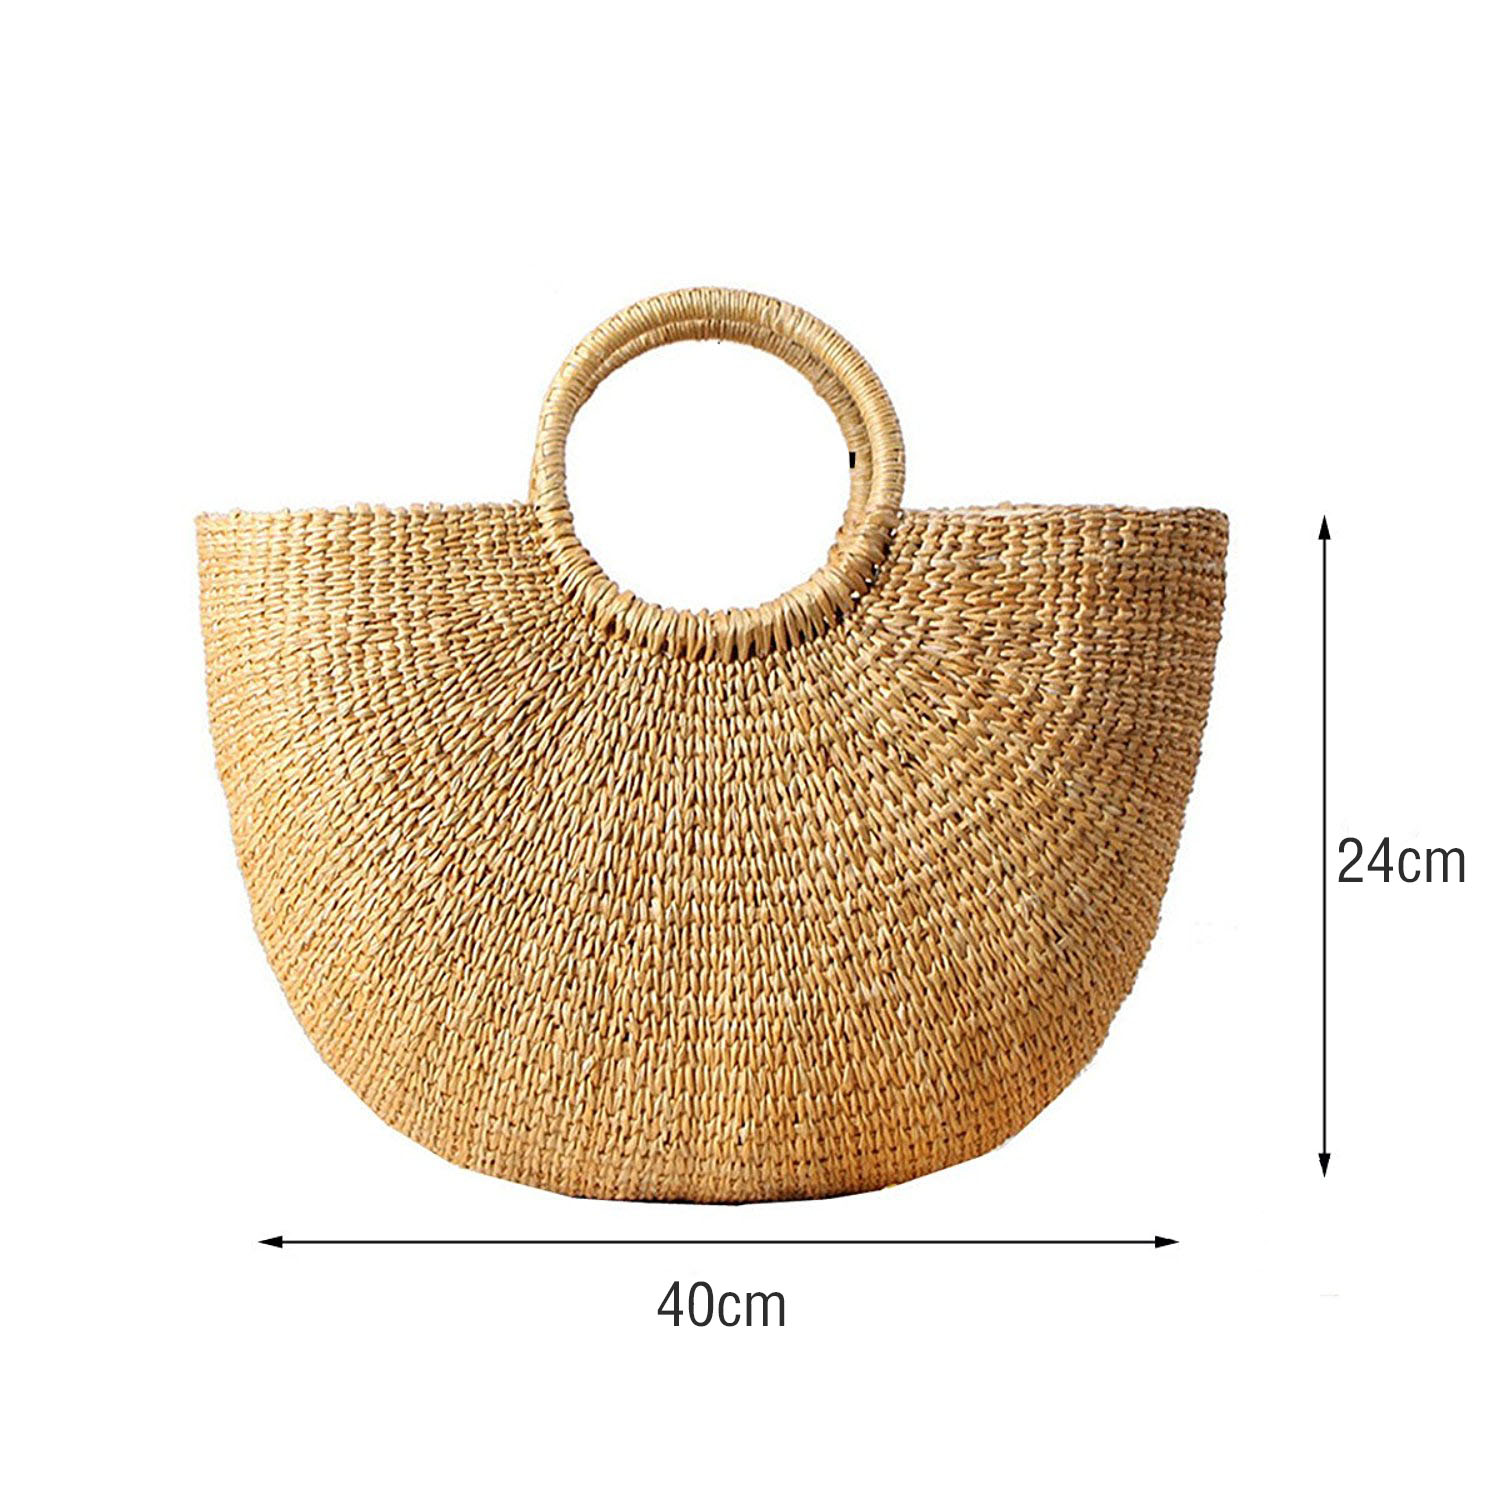 Image 2 - DCOS Womens Vintage Straw Woven Handbags Casual Beach Vacation Large Tote Bags With Round Handle Ring(Hairball)Top-Handle Bags   -